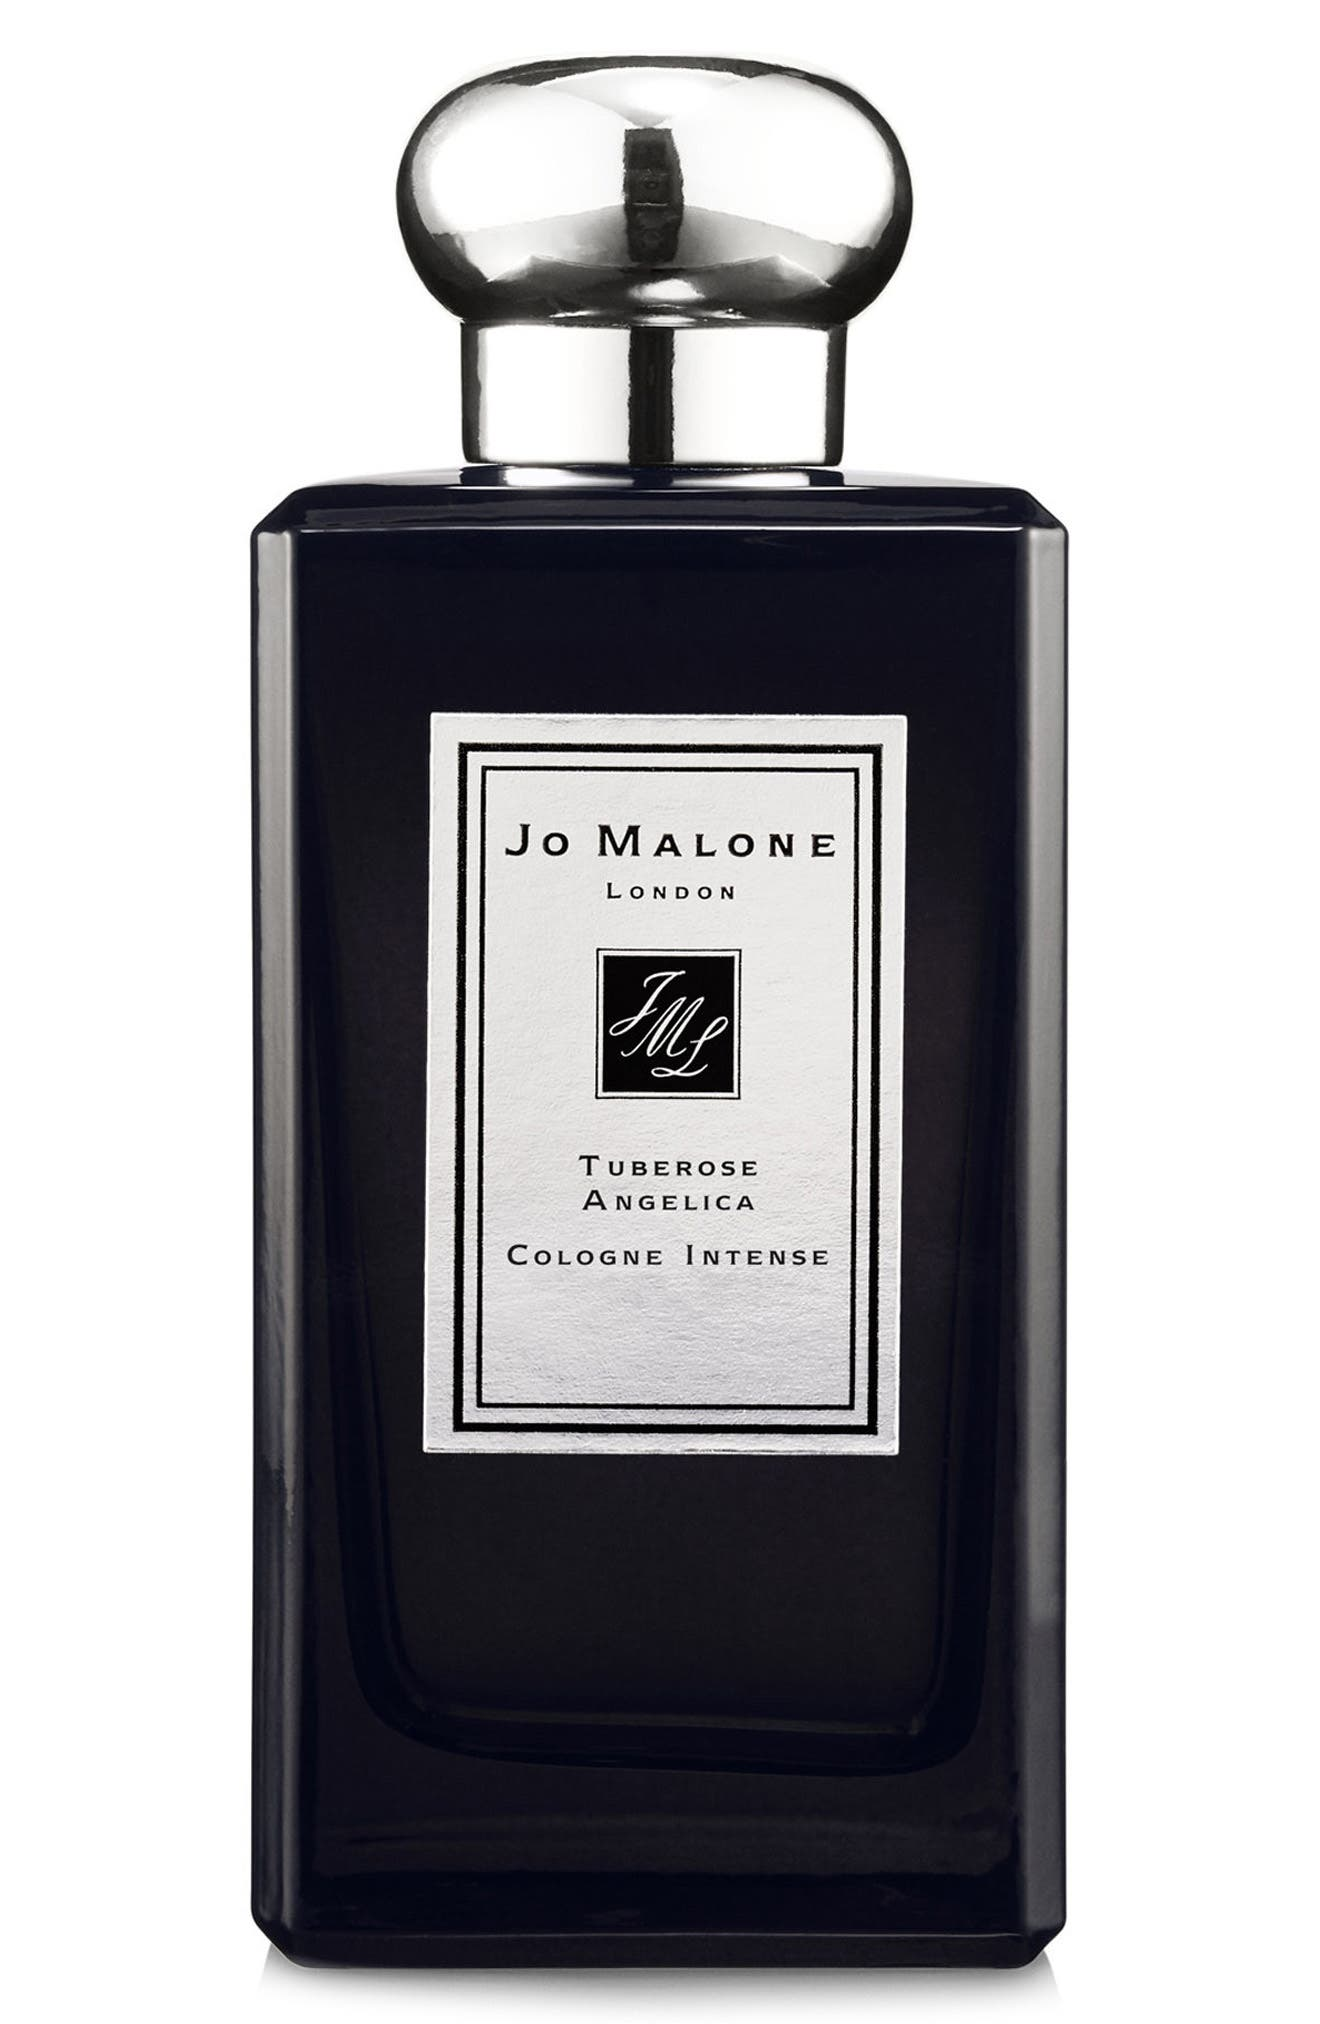 Jo Malone London™ 'Tuberose Angelica' Cologne Intense